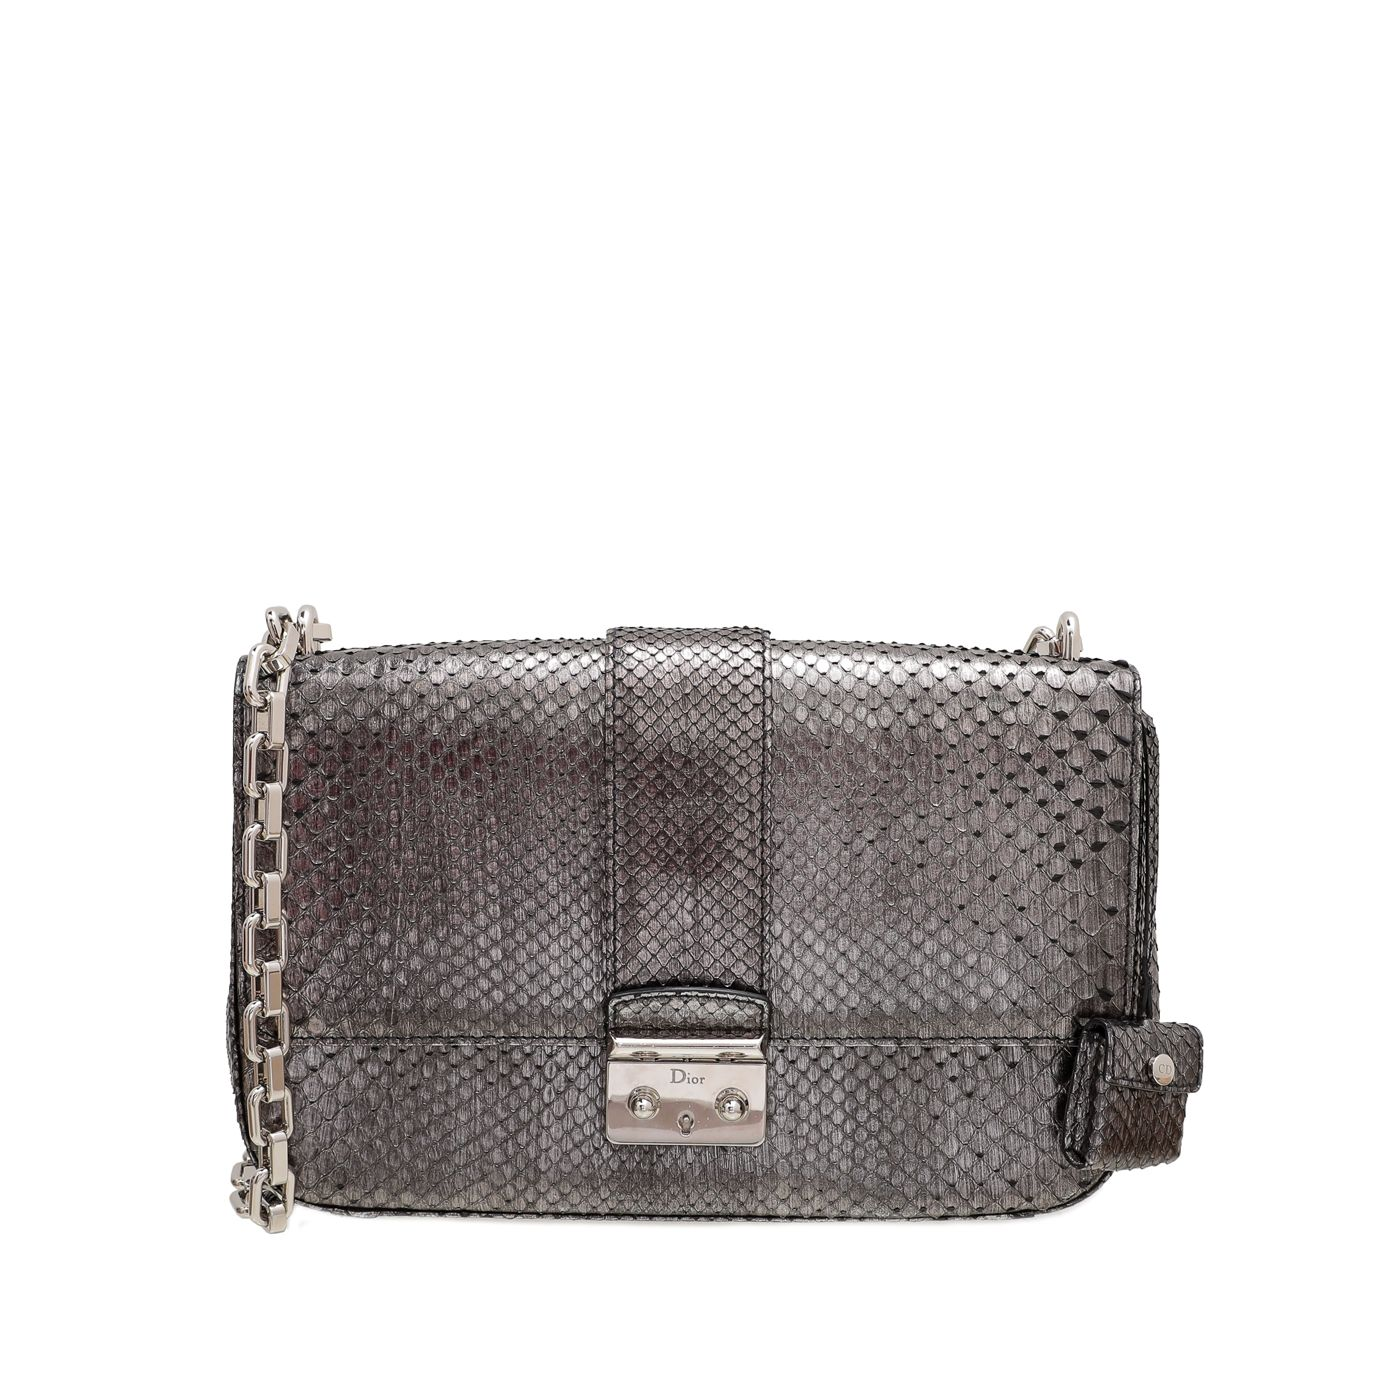 Christian Dior Metallic Grey Python Miss Dior Bag